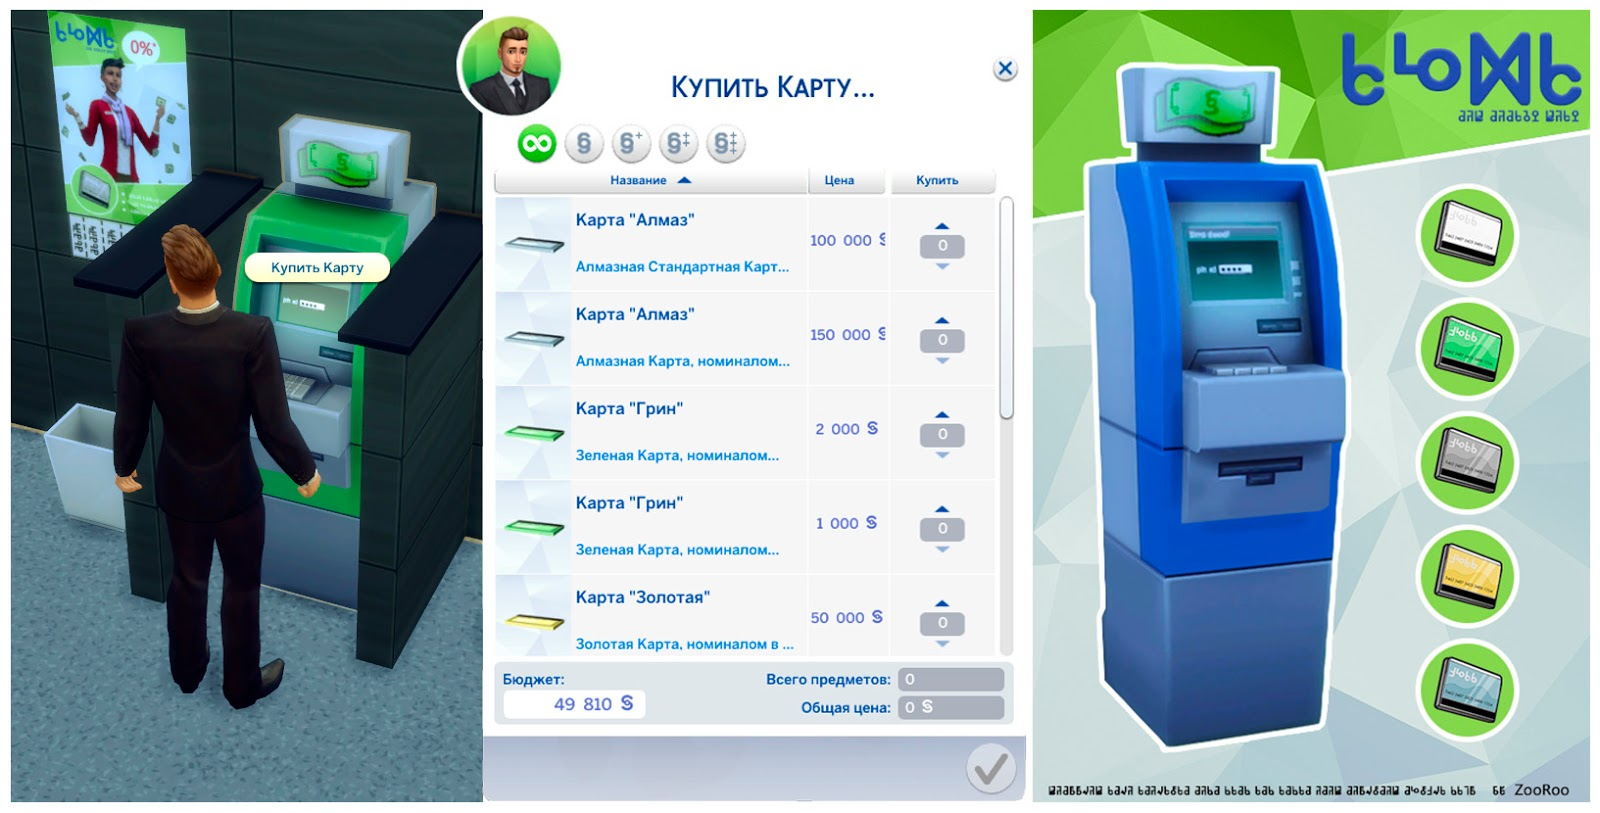 Sims 4 mods traits downloads 187 sims 4 updates 187 page 58 of 100 - Mod The Sims